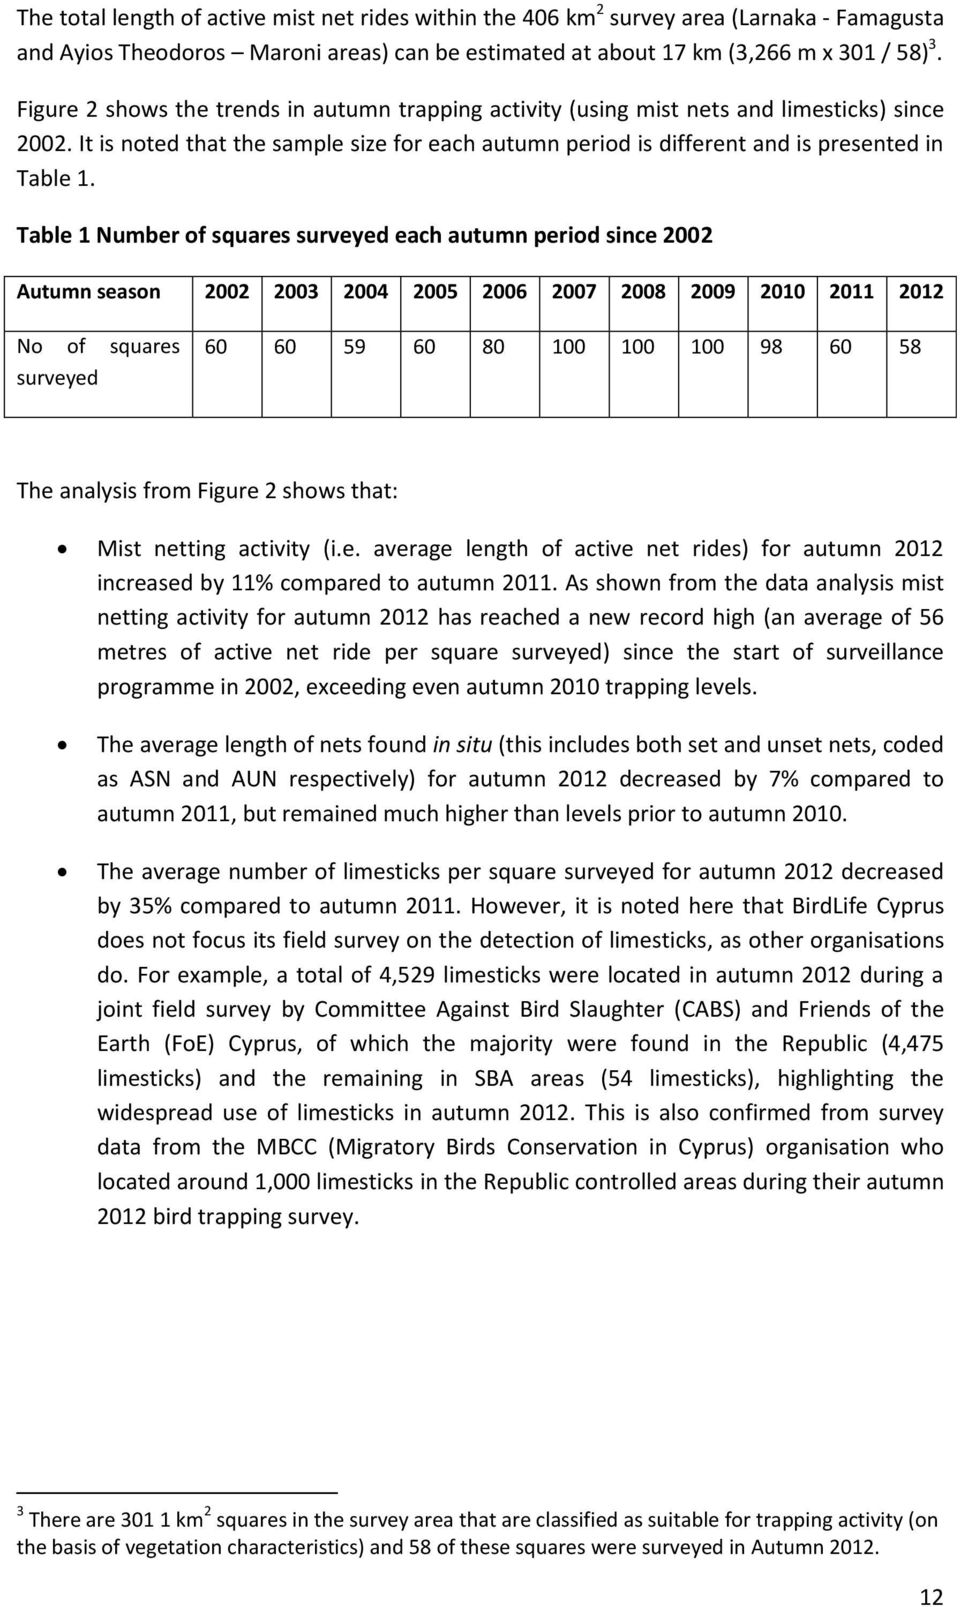 Table 1 Number of squares surveyed each autumn period since 2002 Autumn season 2002 2003 2004 2005 2006 2007 2008 2009 2010 2011 2012 No of squares surveyed 60 60 59 60 80 100 100 100 98 60 58 The